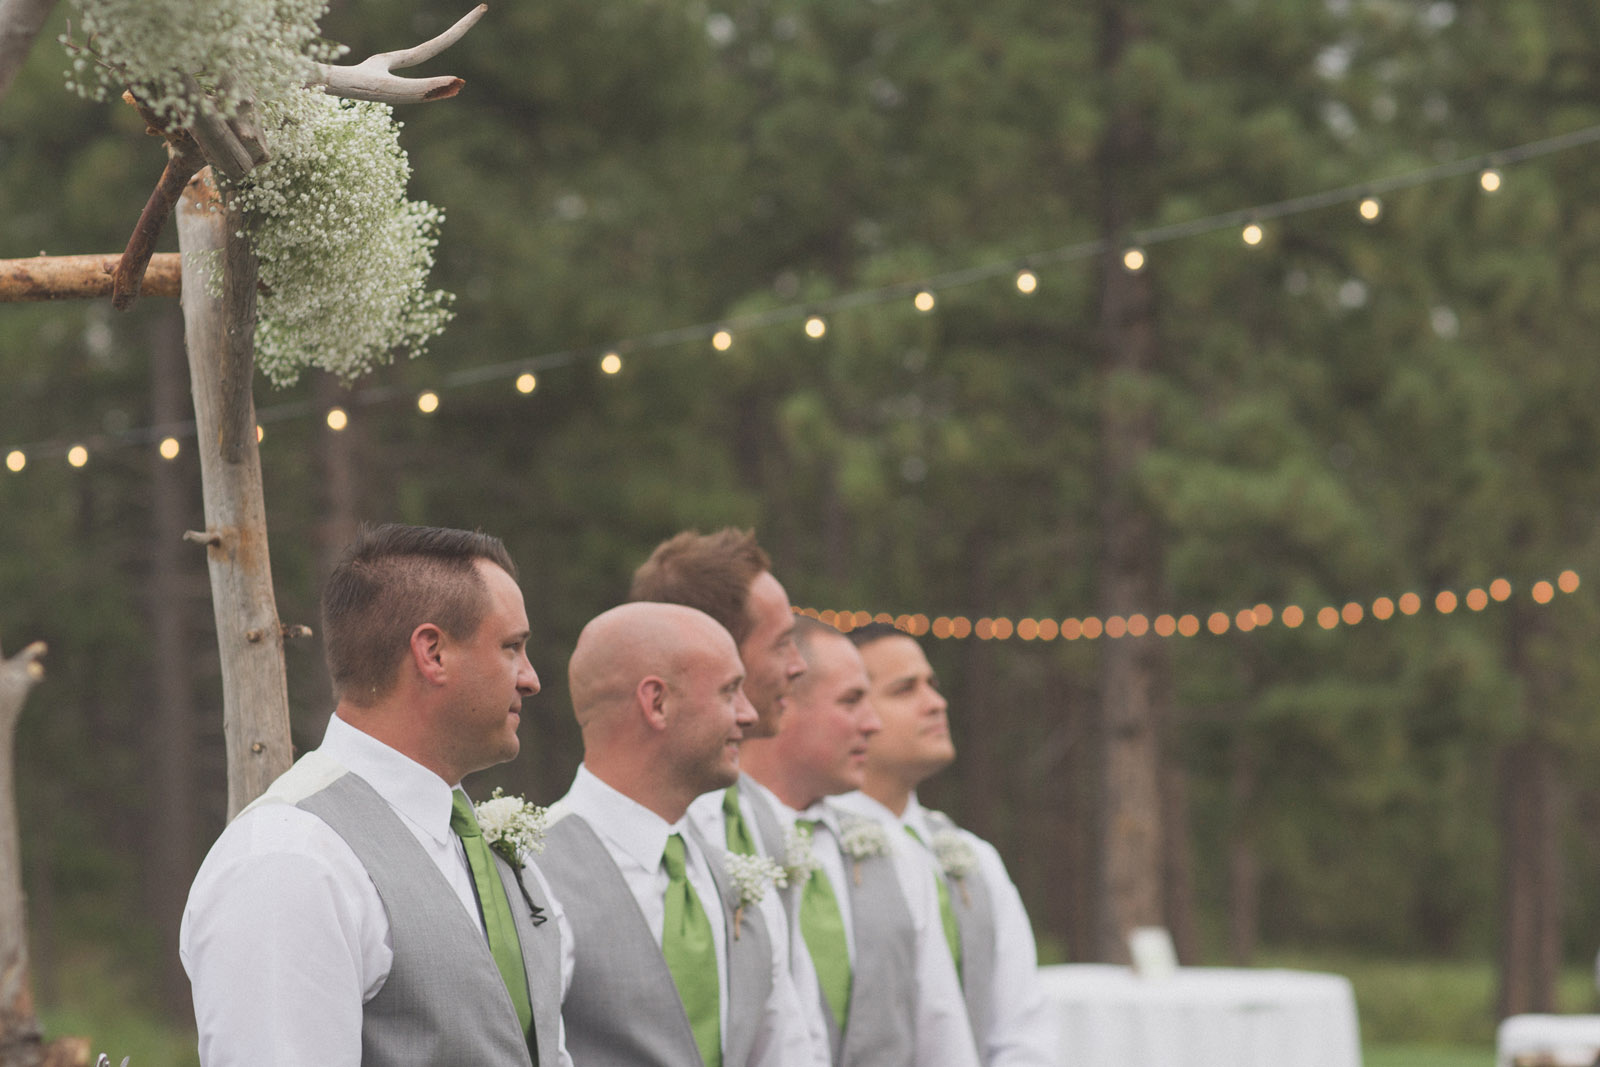 119-wedding-ideas-ideas-wedding-forest-mason-jars-backdrop-colorado-mancos-ceremony